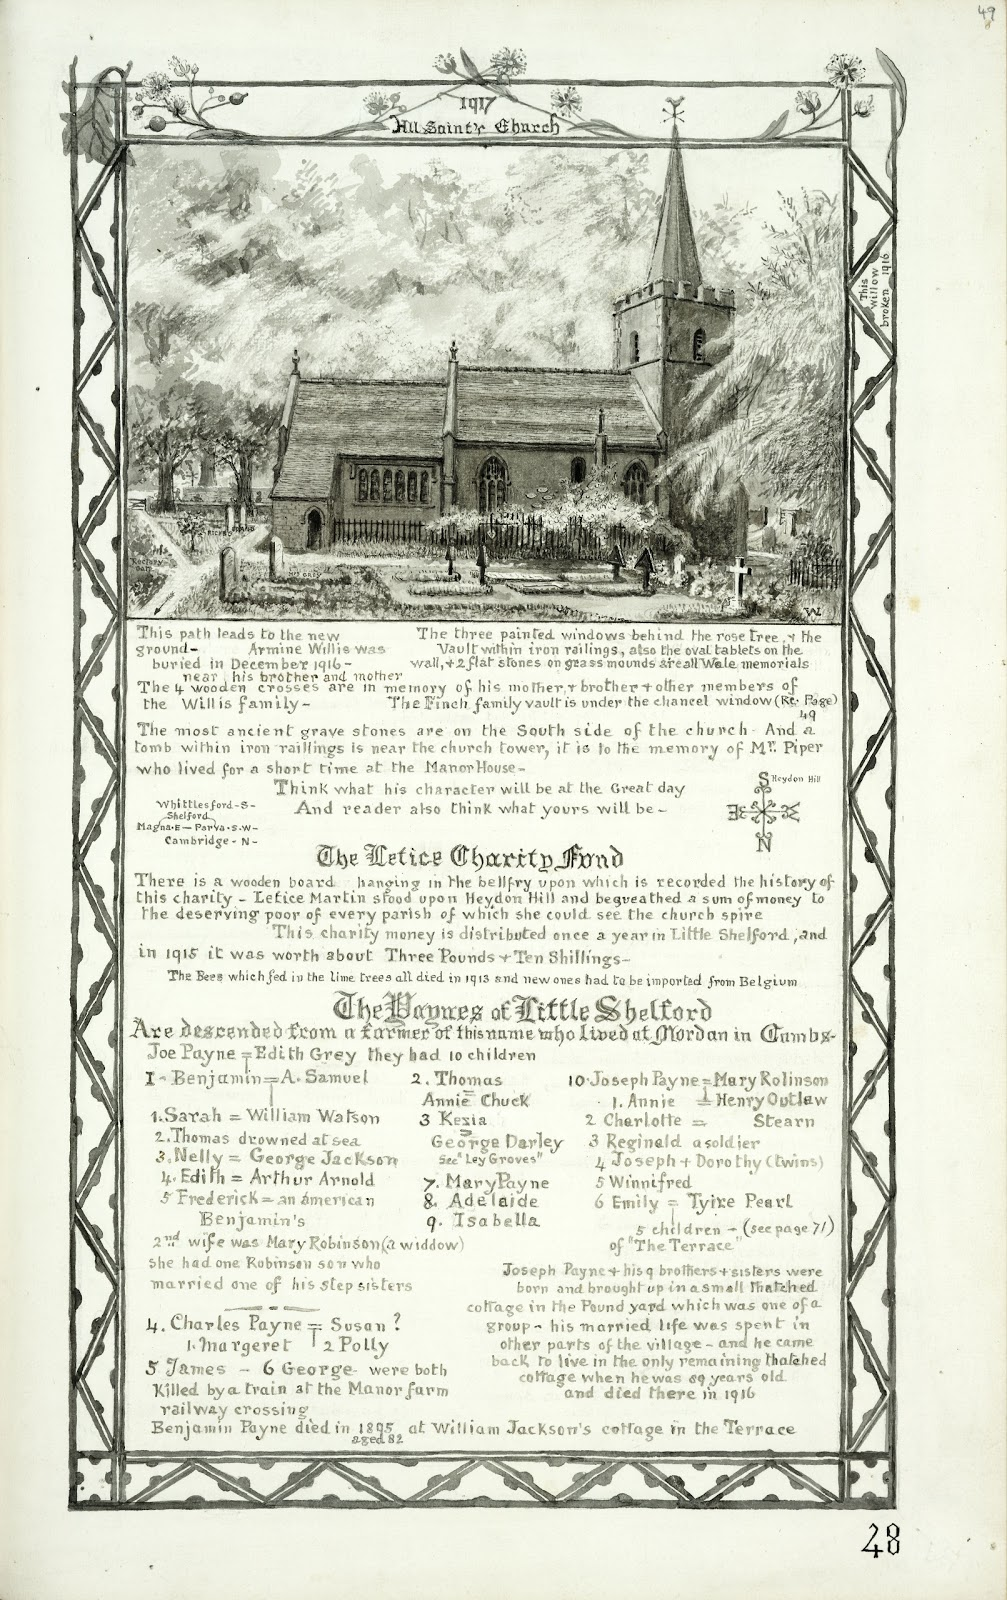 A Record of Shelford Parva by Fanny Wale P48 fo. 49, page 48: 1917 All Saints Church: A black and white watercolour picture of north side of All Saints Church. An explanation of the Lettice charity fund and a description of the Paynes of Little Shelford with a family tree.  [fo.46]